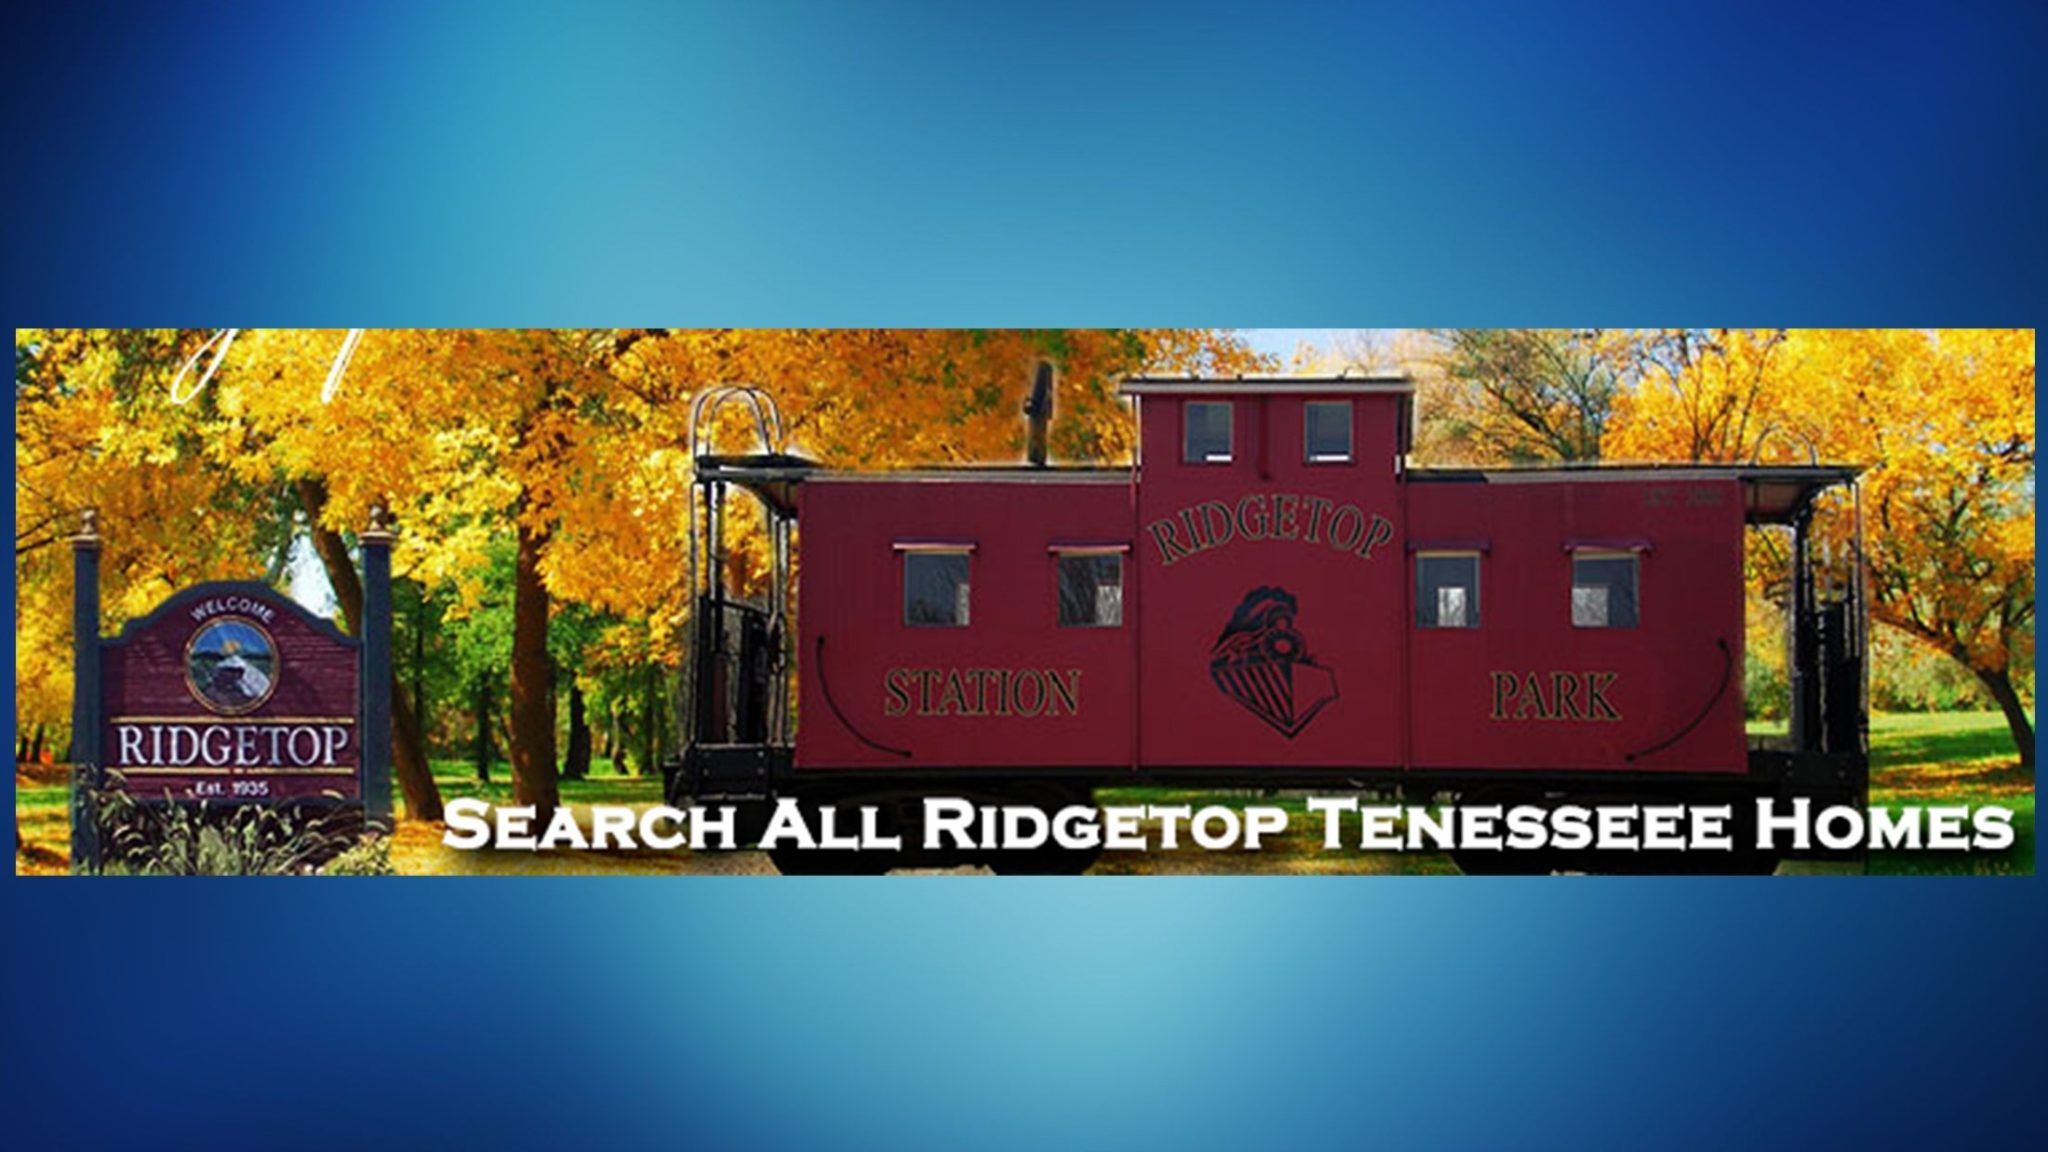 Mobile Homes For Rent In Ridgetop Tennessee   Robert